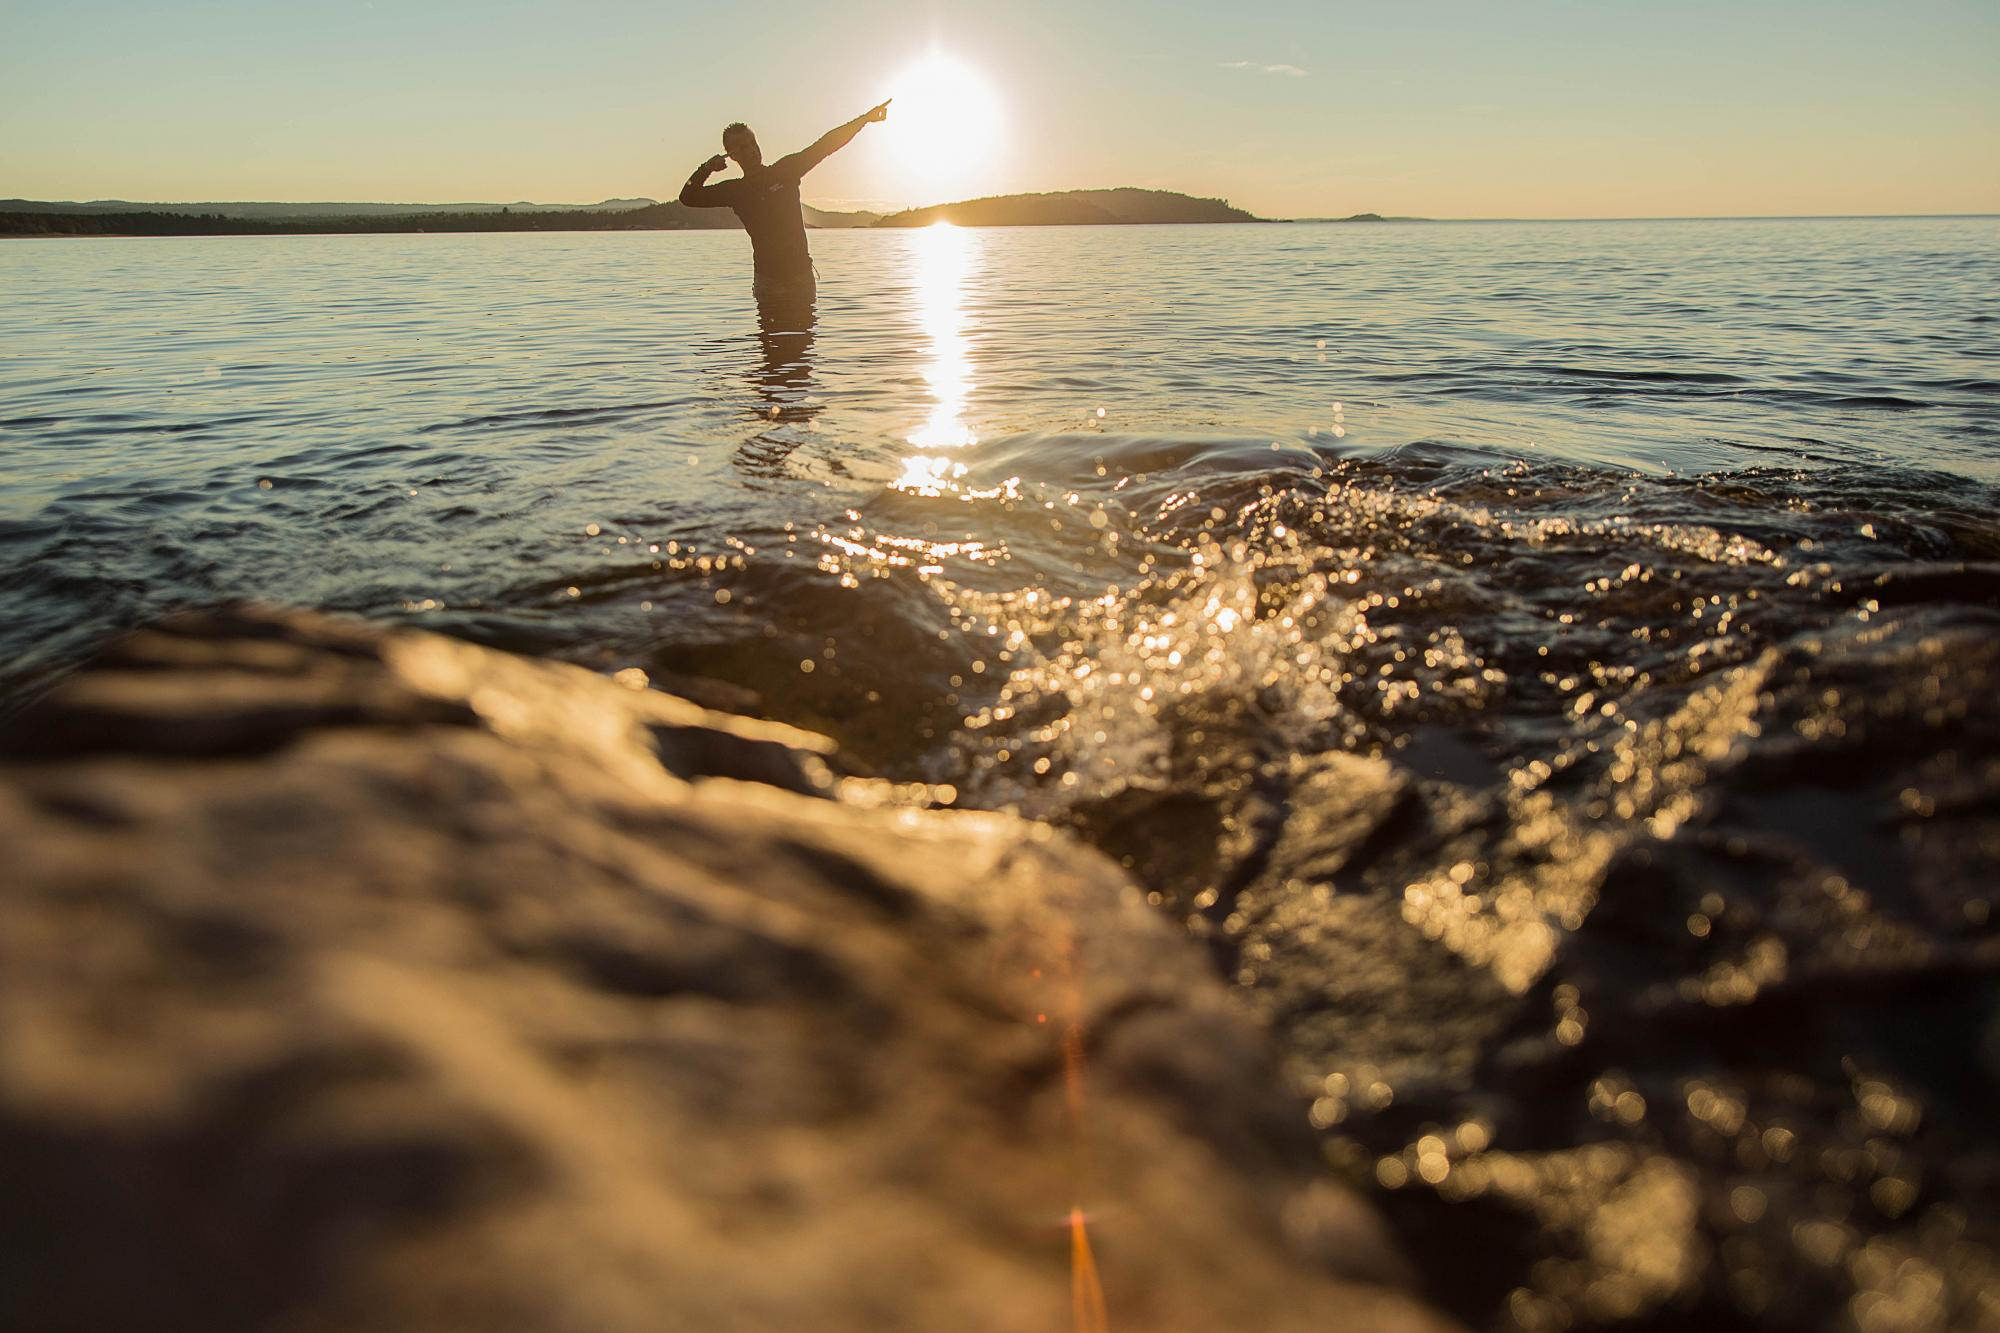 Silhouette of student standing in Lake Superior at sunset